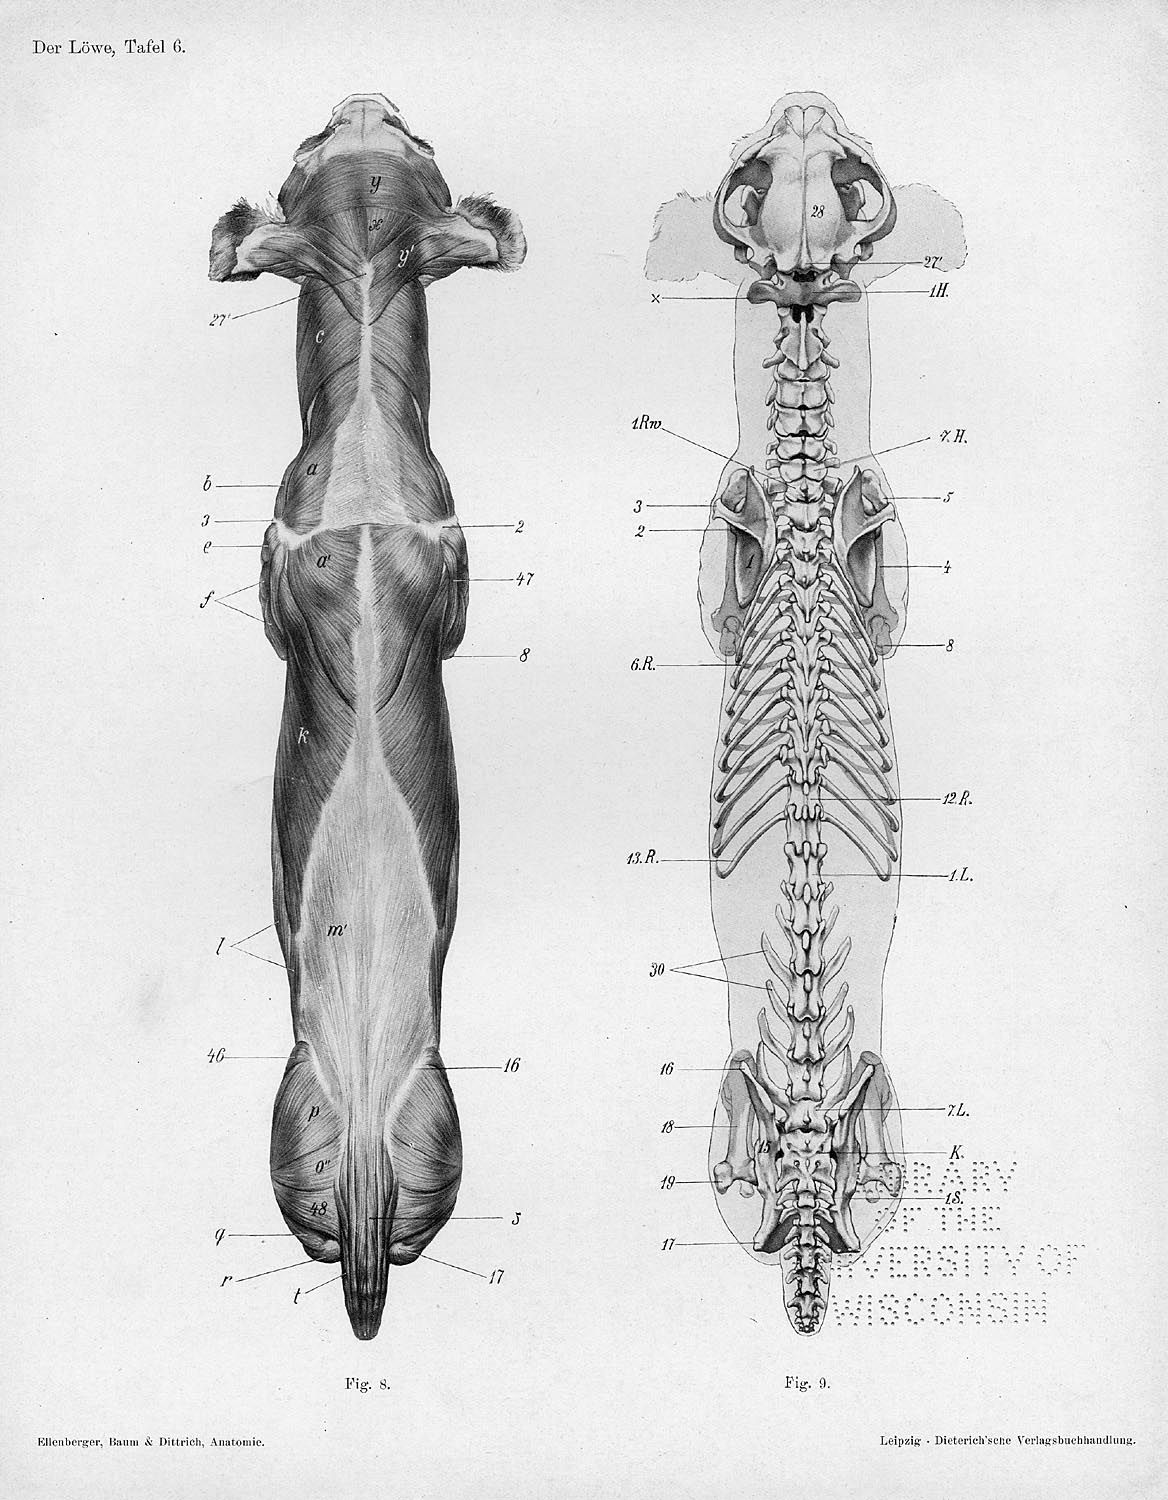 These are dorsal views of the musculoskeletal system of the whole ...